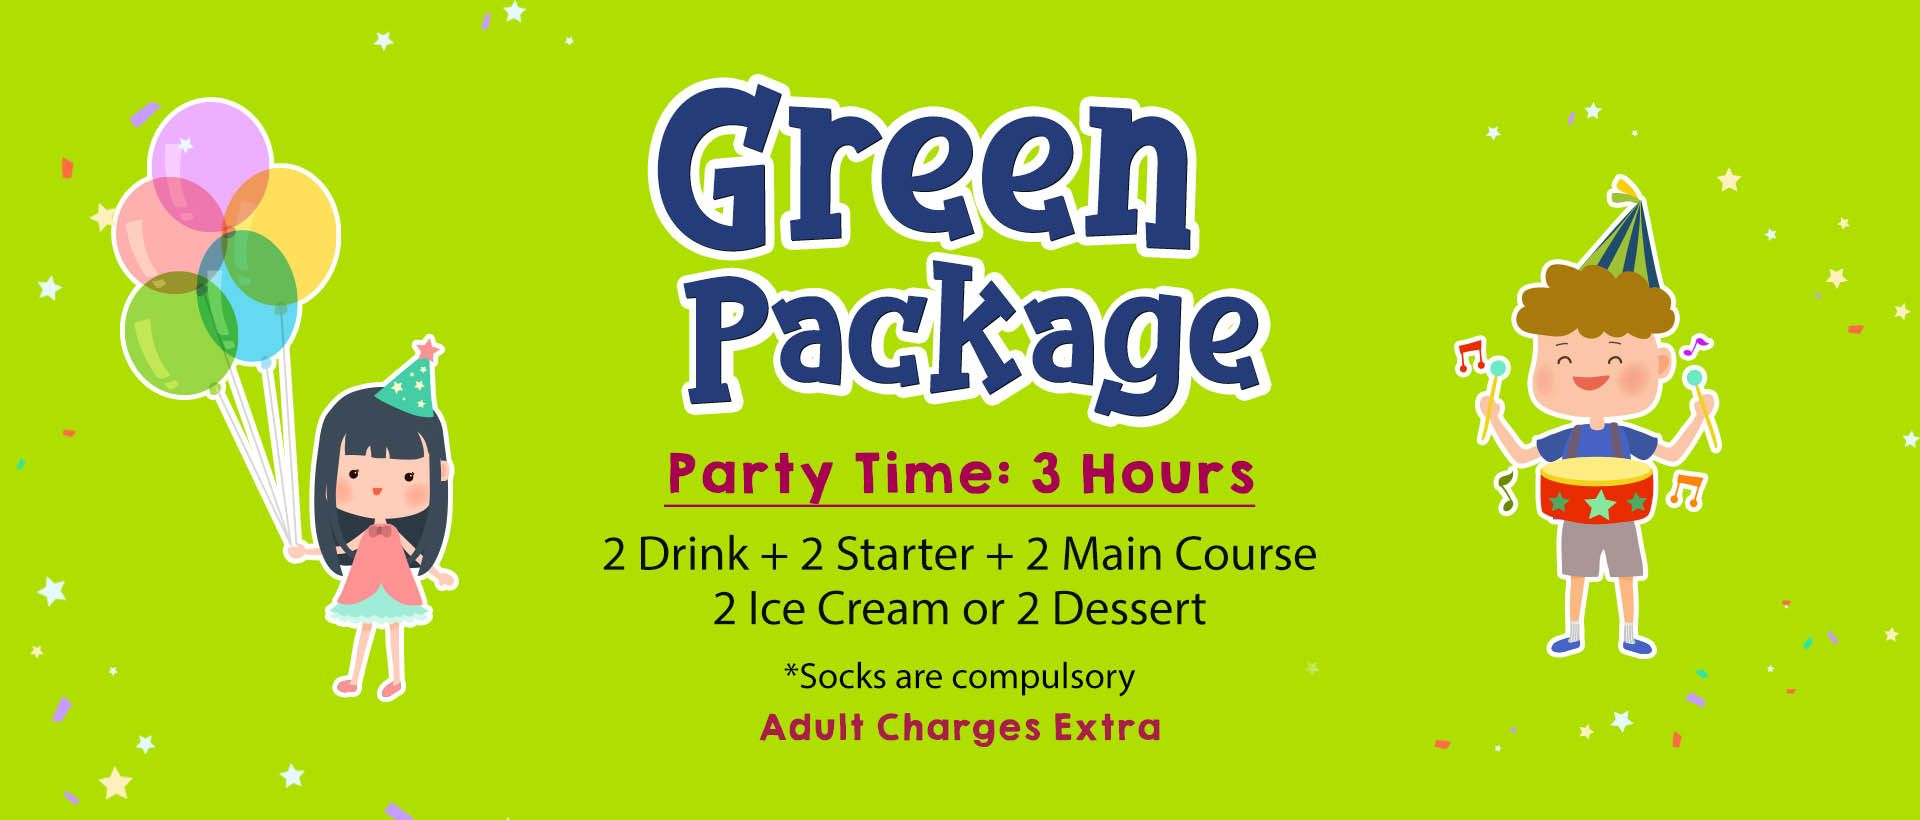 green package revised